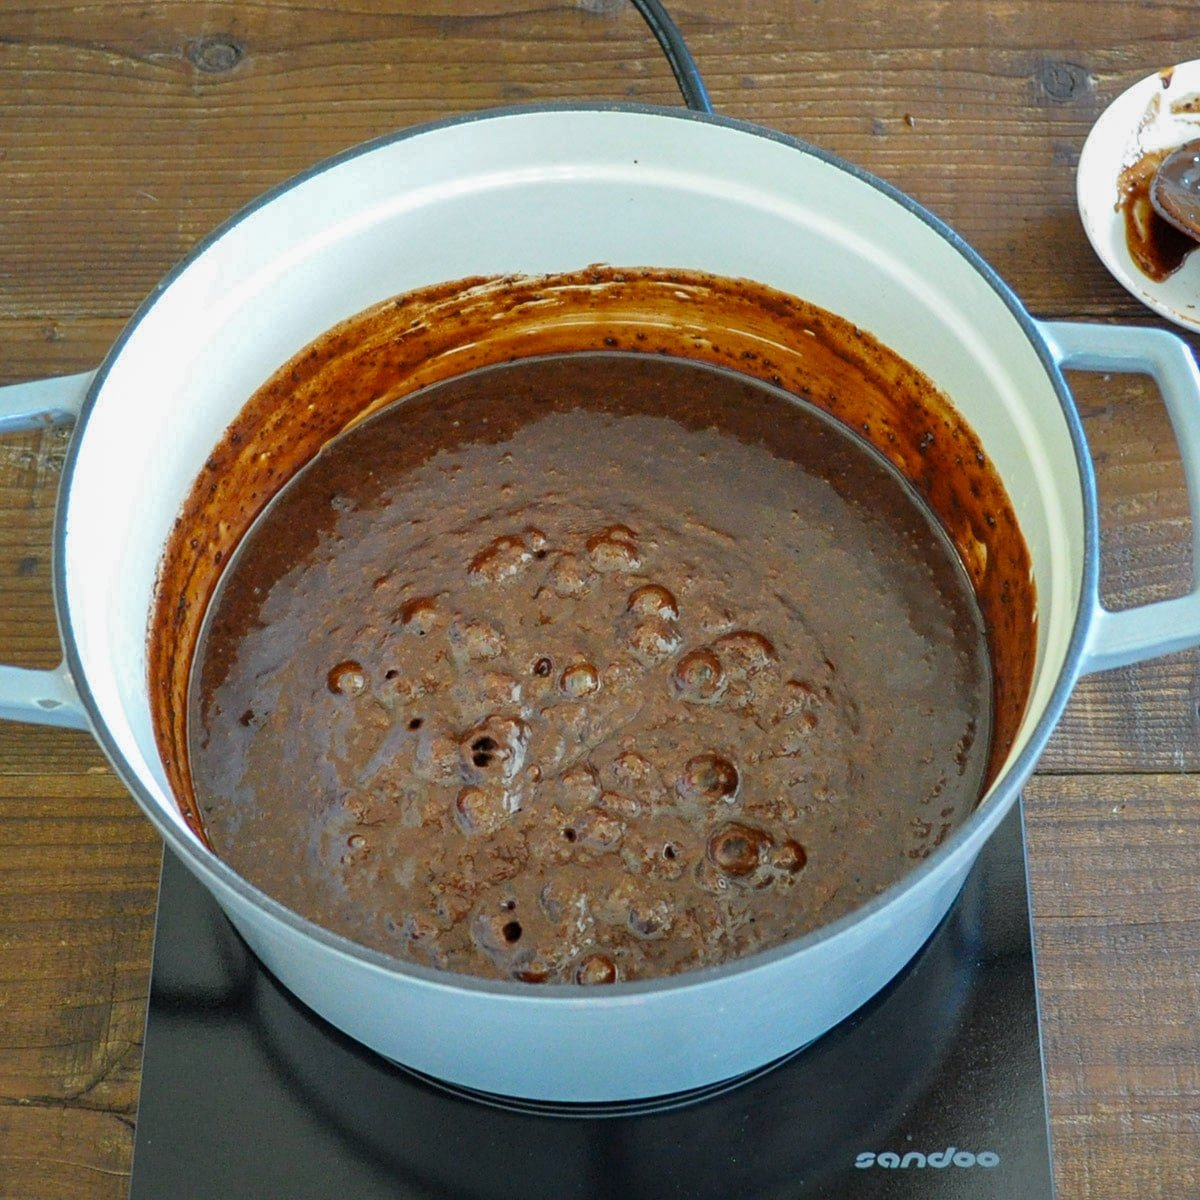 butter, milk, cocoa, and sugar that is coming to a boil in a large pan